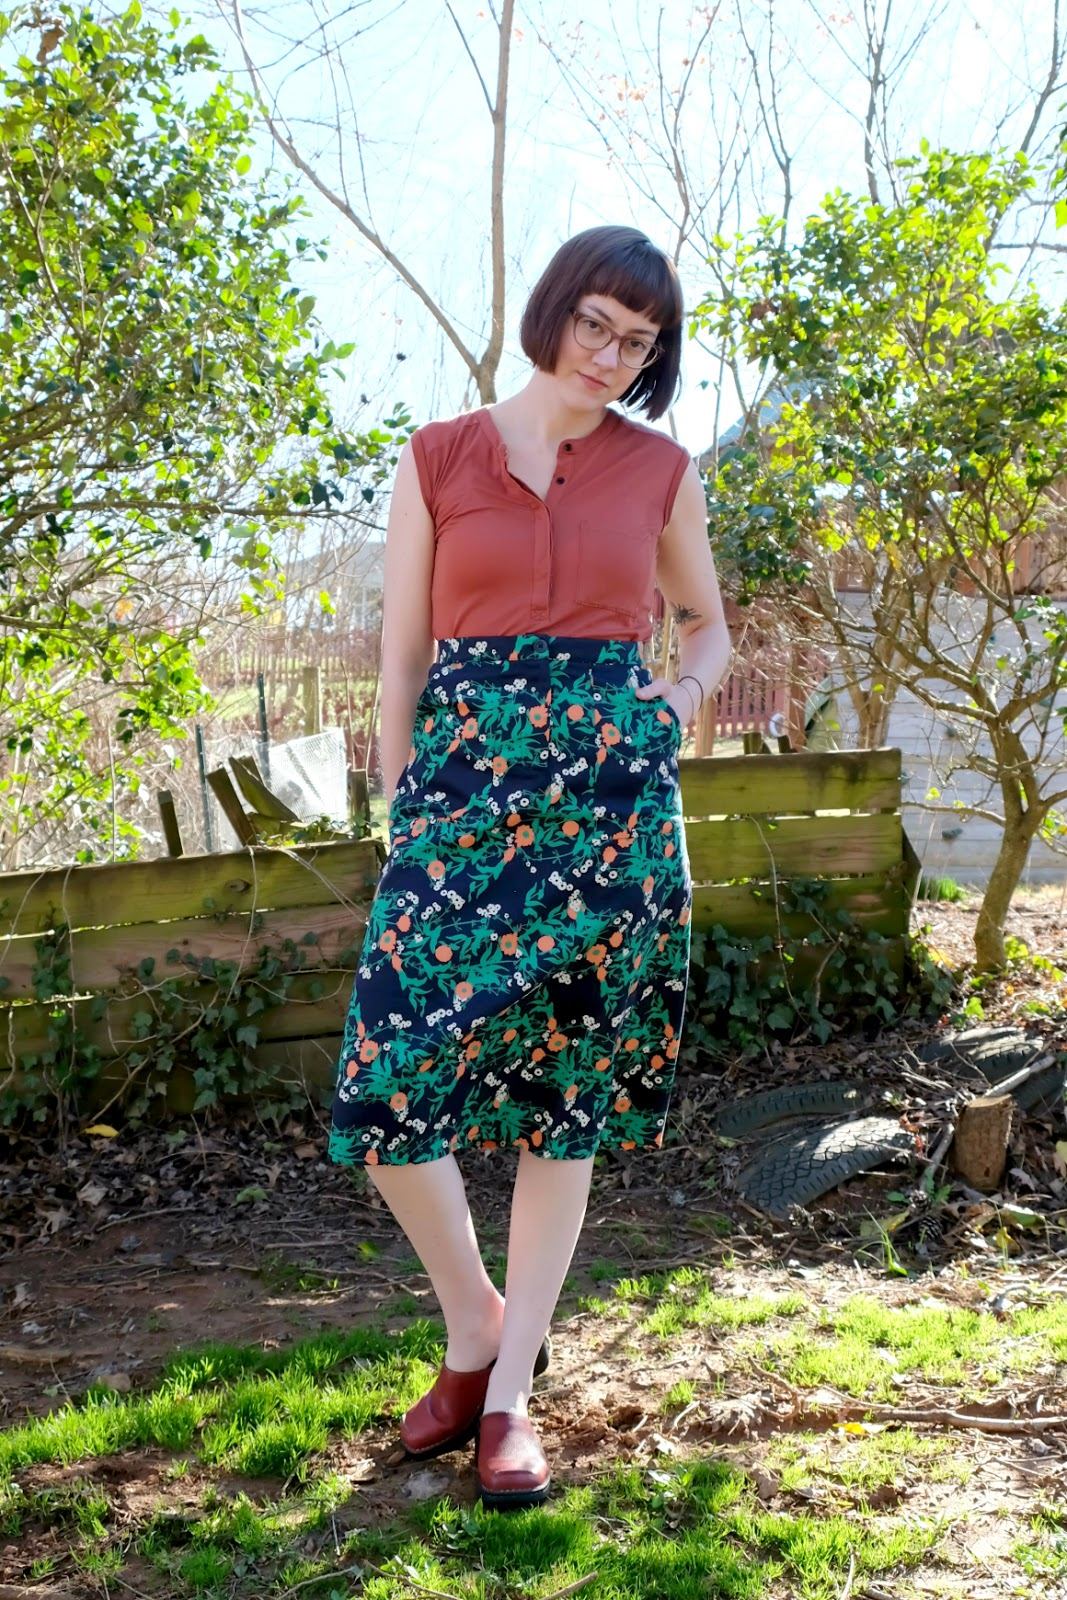 People Tree Thandie Marigold Skirt Review stylewise-blog.com